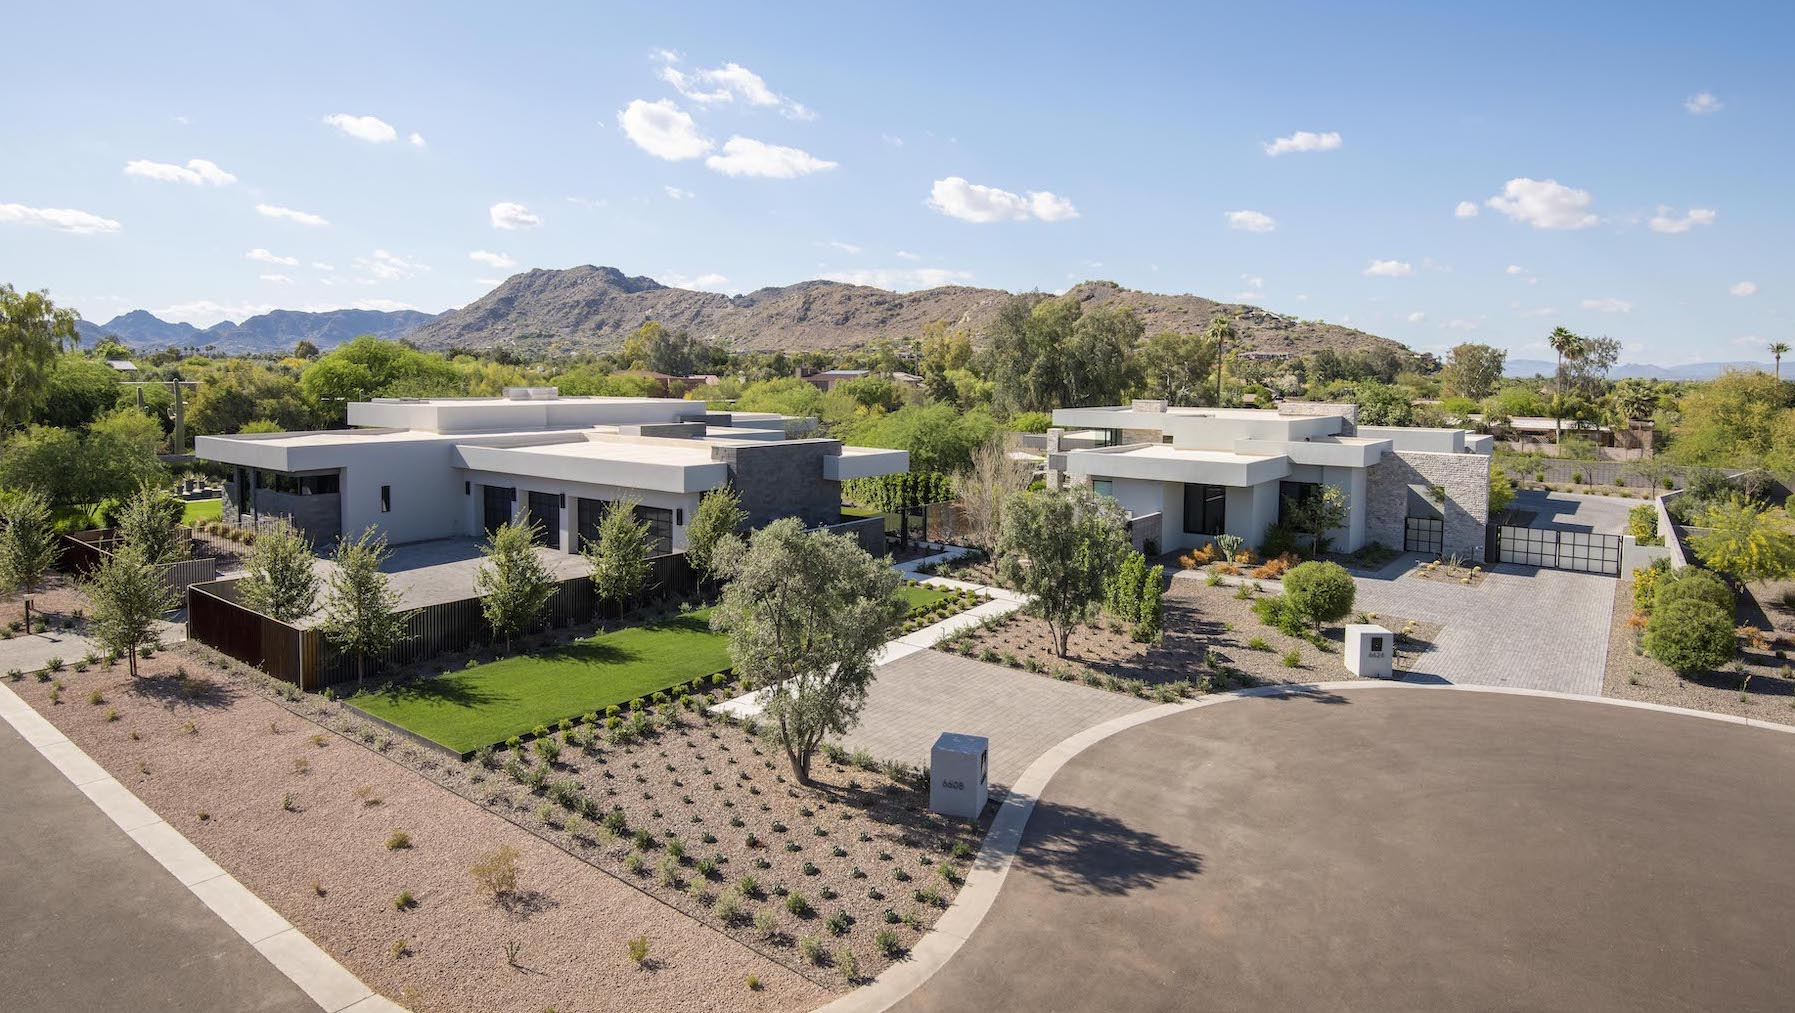 Kachina Estates